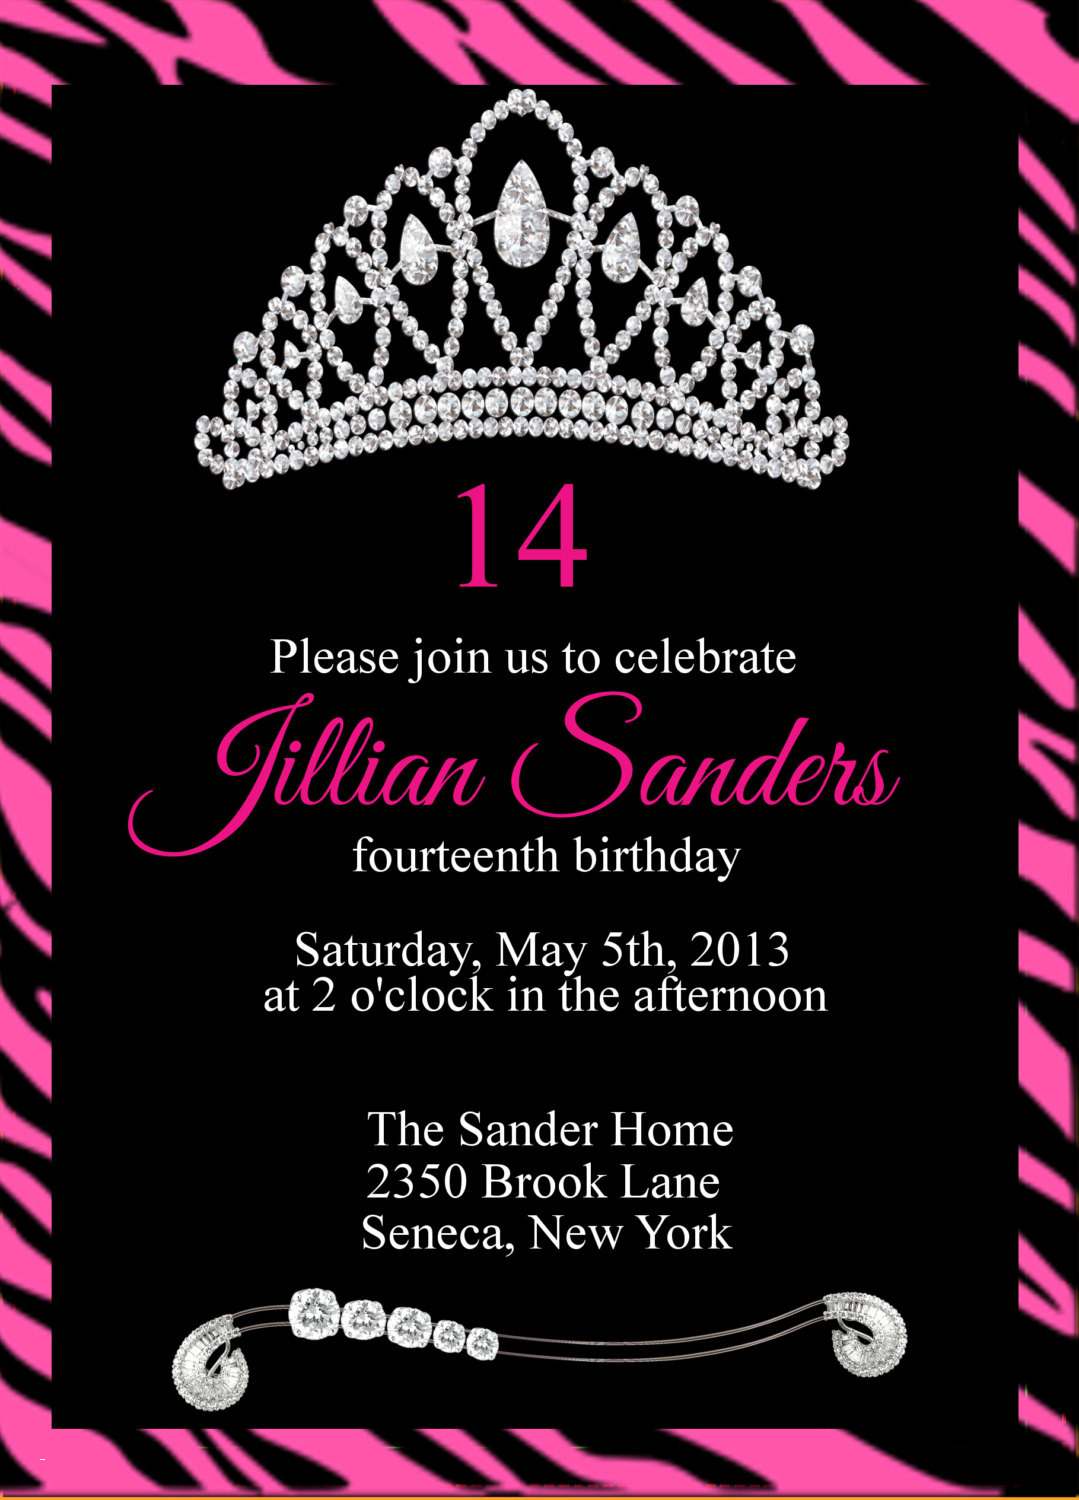 teenage birthday invitation templates ; teen-birthday-invitation-templates-best-of-printable-birthday-invitation-cards-unique-dinosaur-birthday-party-of-teen-birthday-invitation-templates